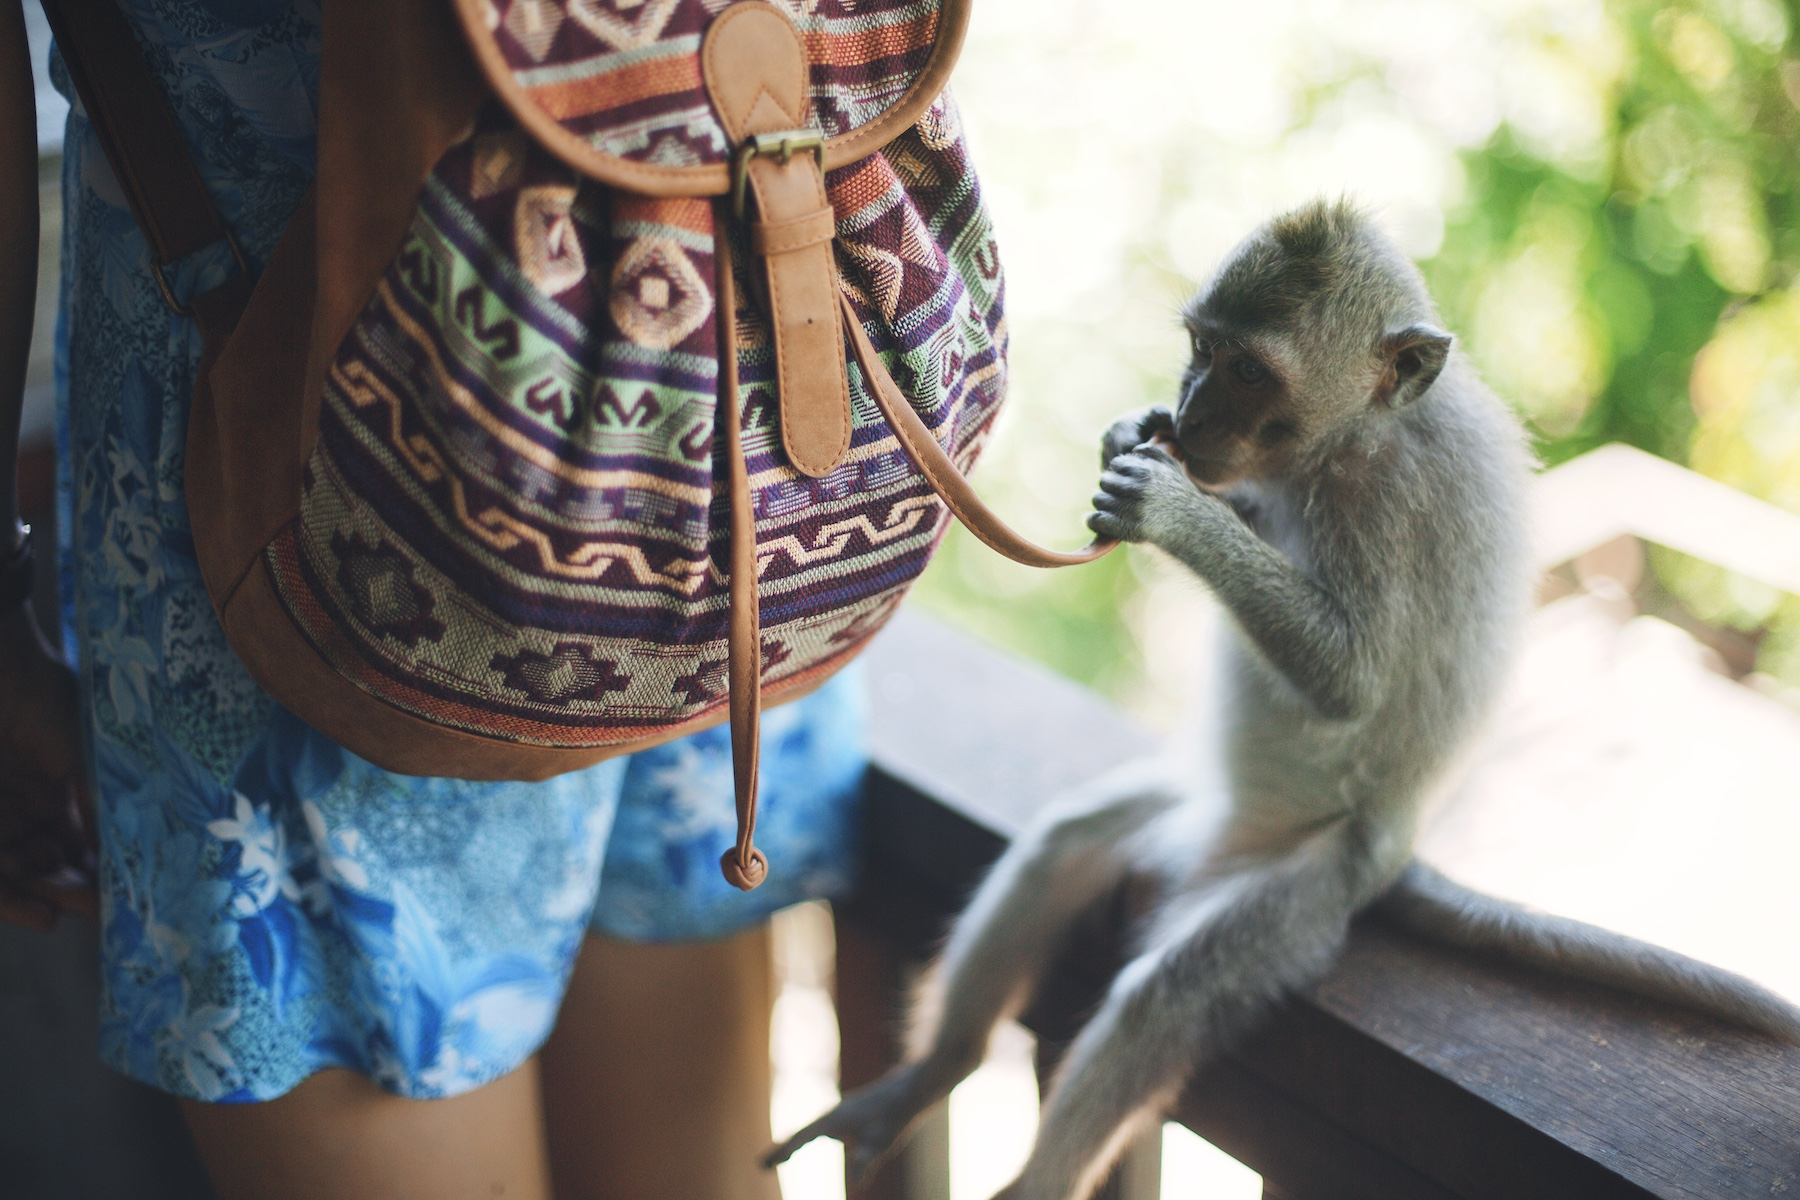 Monkeyforest-web [12 of 18] [Image by Jarrad Seng].jpg